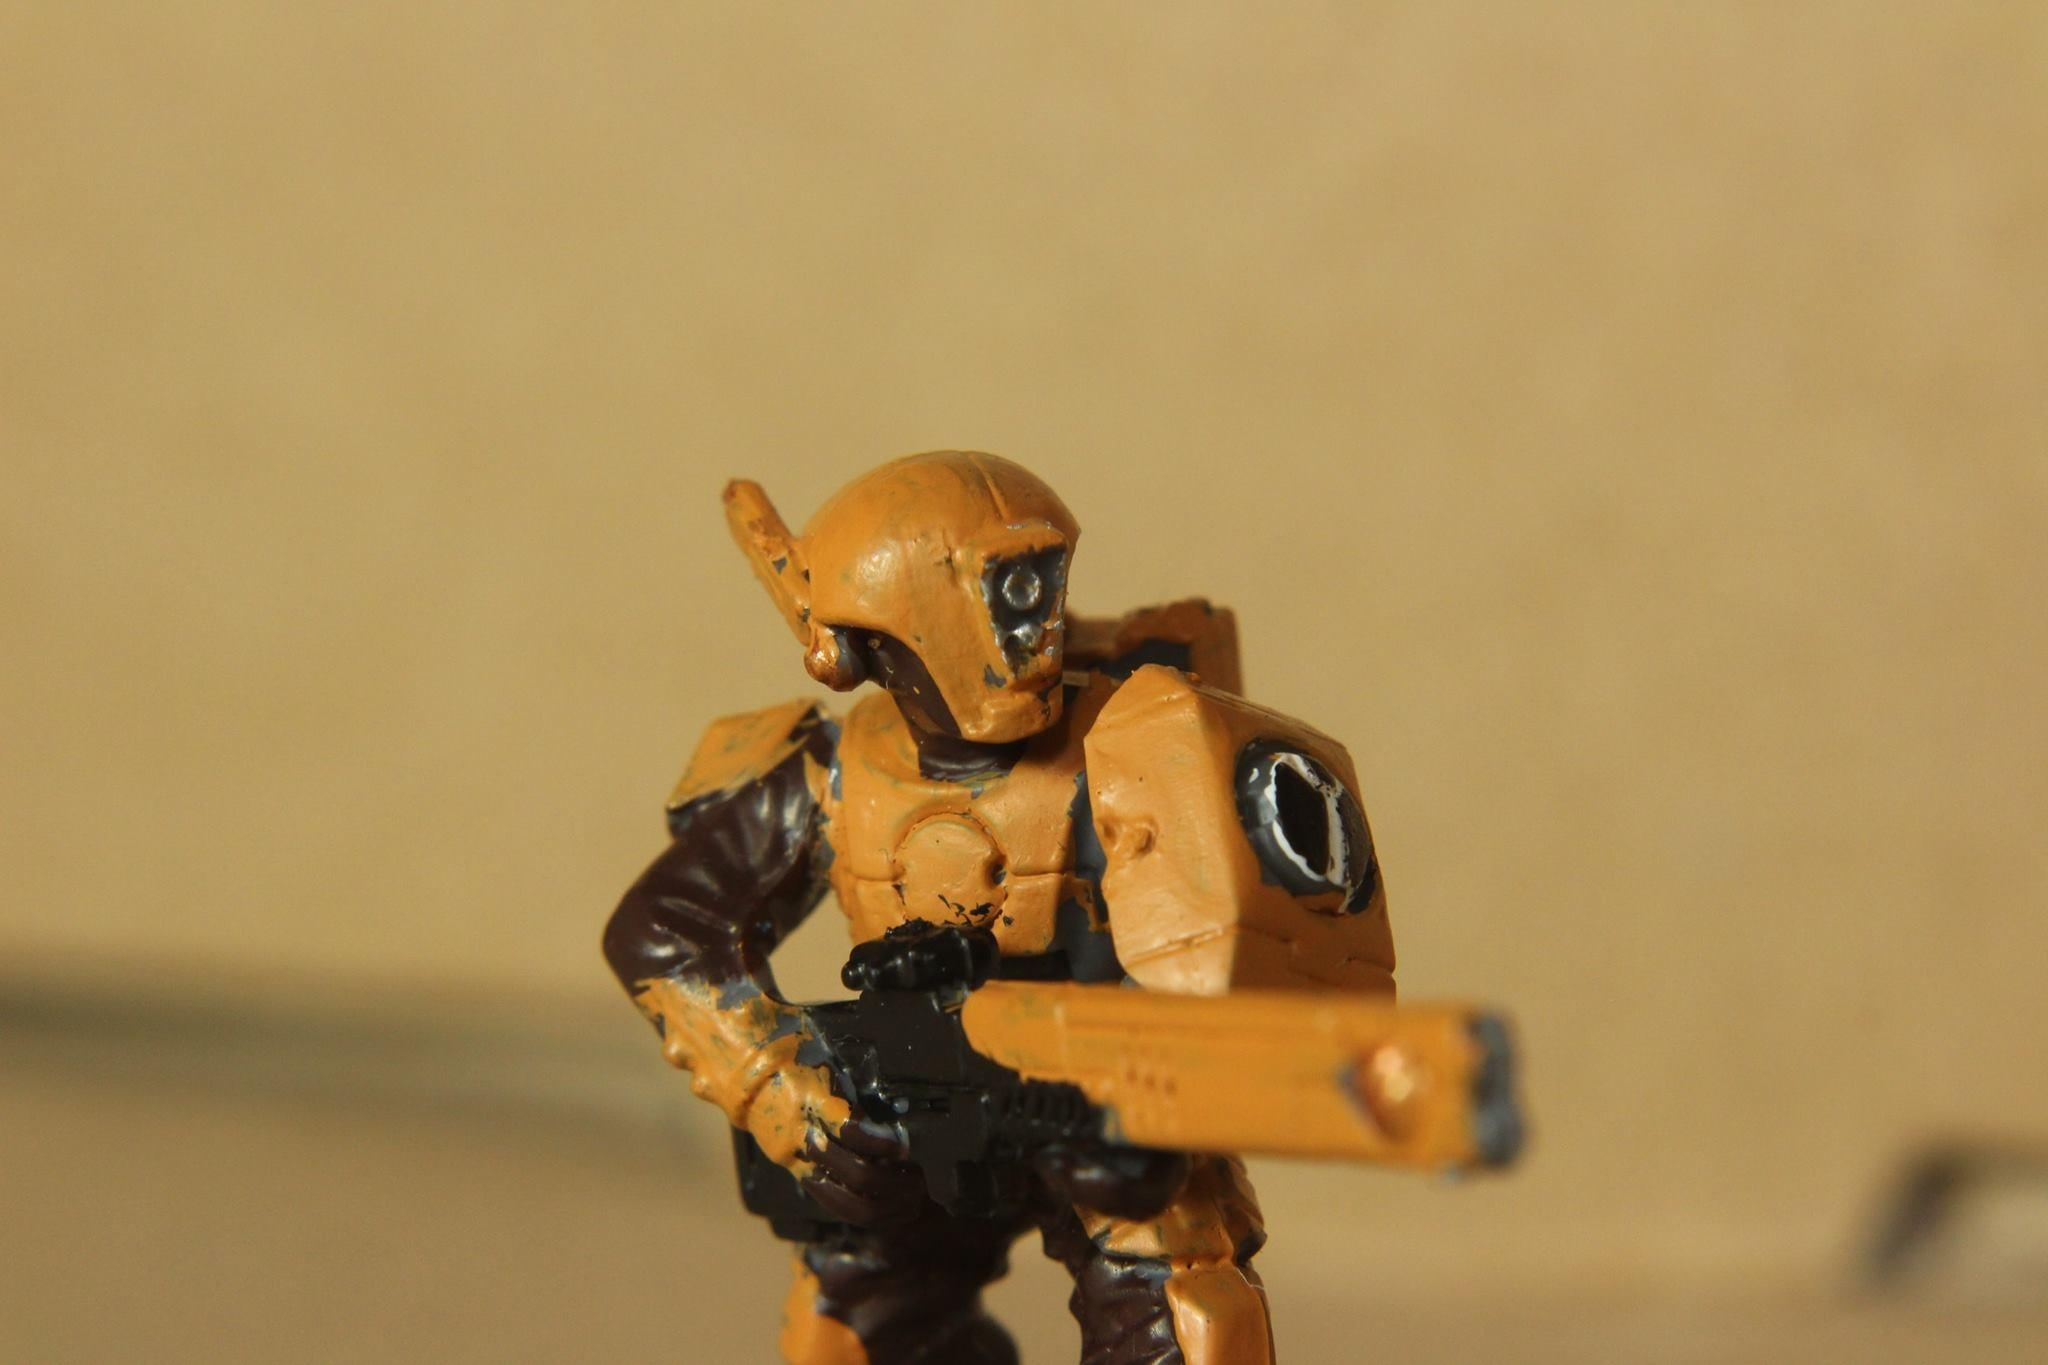 8, Burst Cannon, Crisis Battlesuit, Drone, Drones, Ethereal, Finders, Fire, Fire Warriors, Fusion, Fusion Rifle, Kroot, Missile, Missile Pod, Path, Pathfinders, Plasma, Pose, Pulse Rifle, Rifle, Stealth, Suit, Tau, Warriors, Xv, XV8